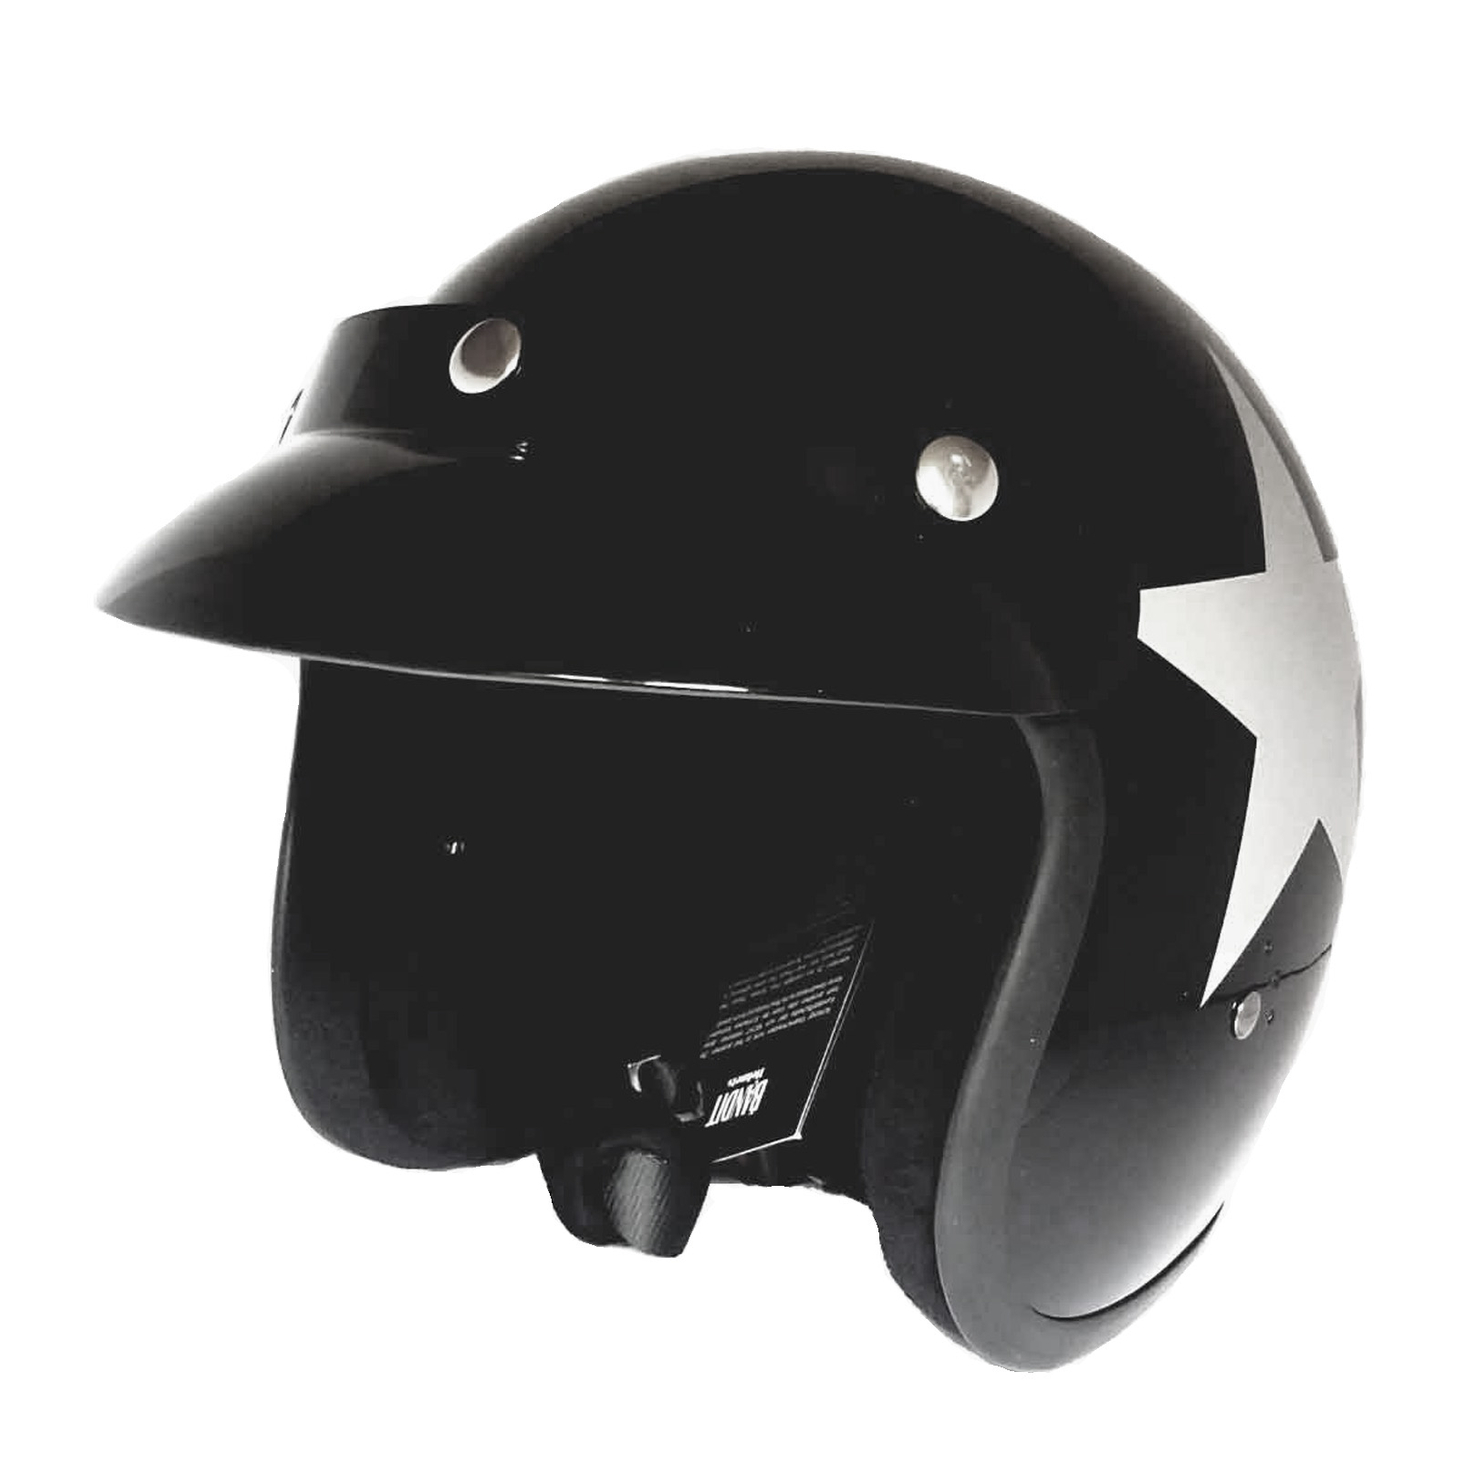 Bandit Star Black Jet Helmet - Black Motorcycle Helmet – Picture 3